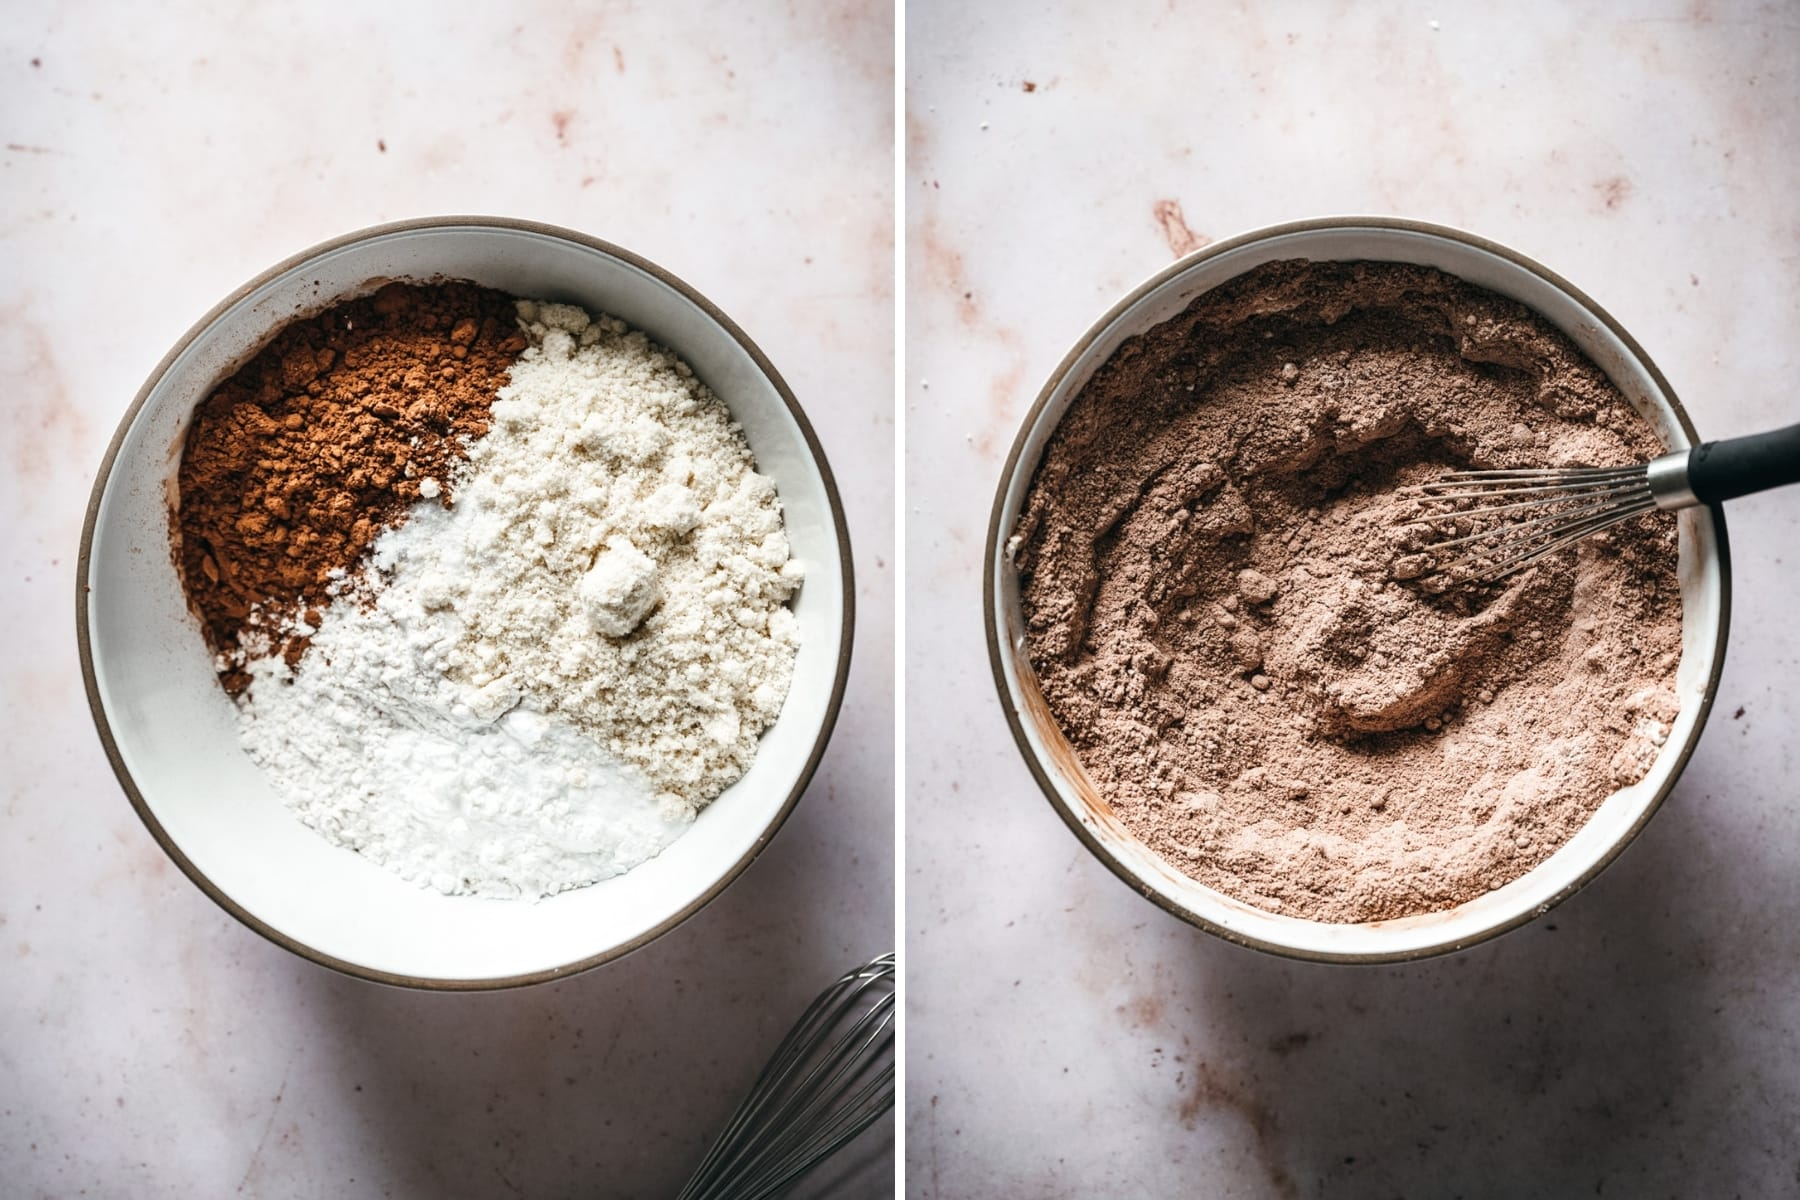 before and after whisking together dry ingredients for vegan chocolate cupcakes.